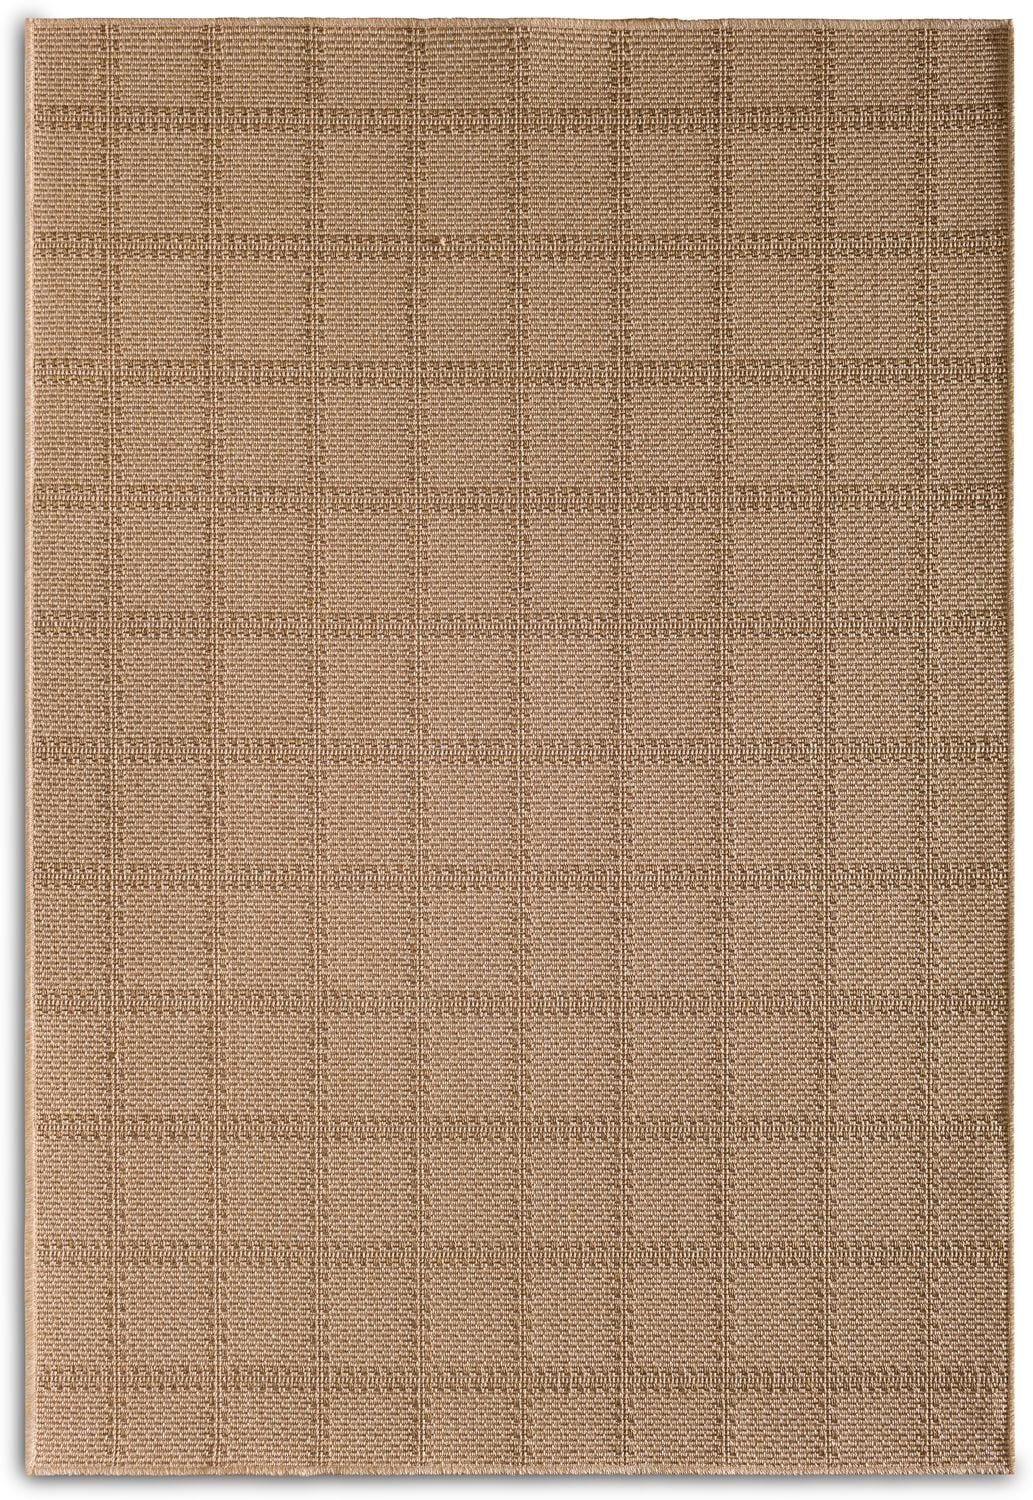 Outdoor Furniture - Plaid Indoor/Outdoor Rug - Beige